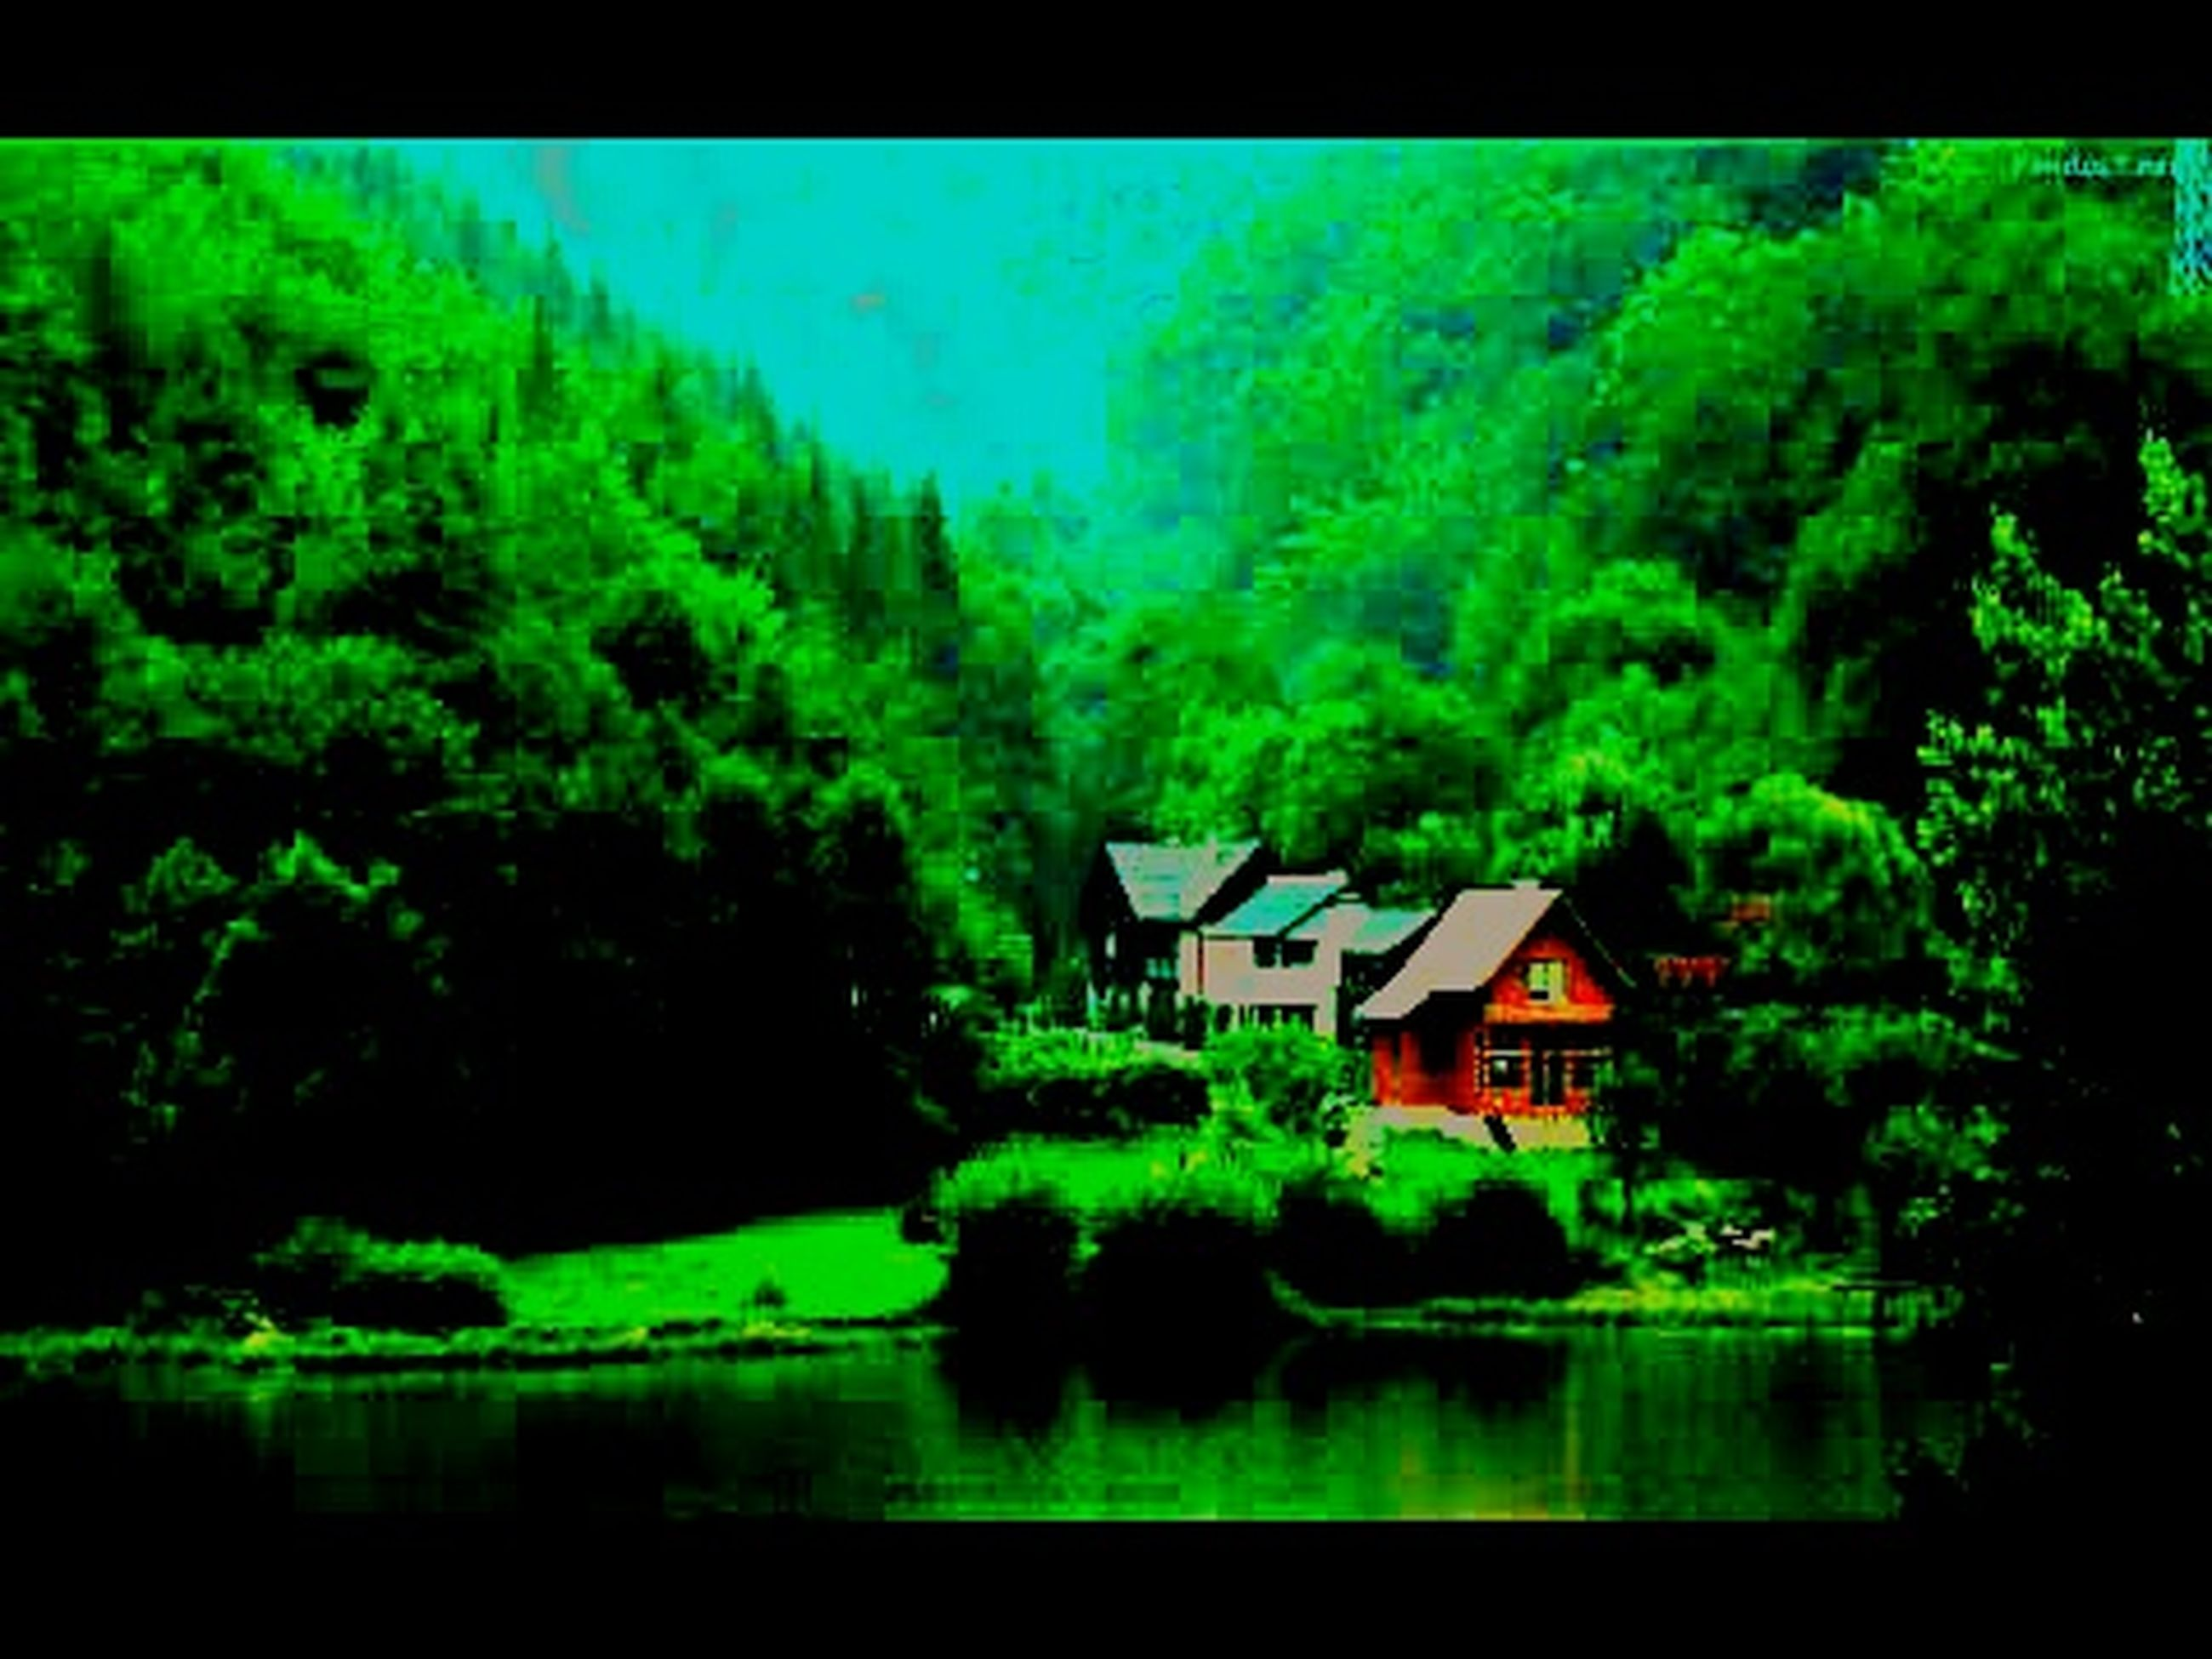 tree, water, architecture, built structure, building exterior, house, green color, waterfront, transfer print, reflection, auto post production filter, tranquil scene, lake, nature, lush foliage, growth, tranquility, beauty in nature, scenics, river